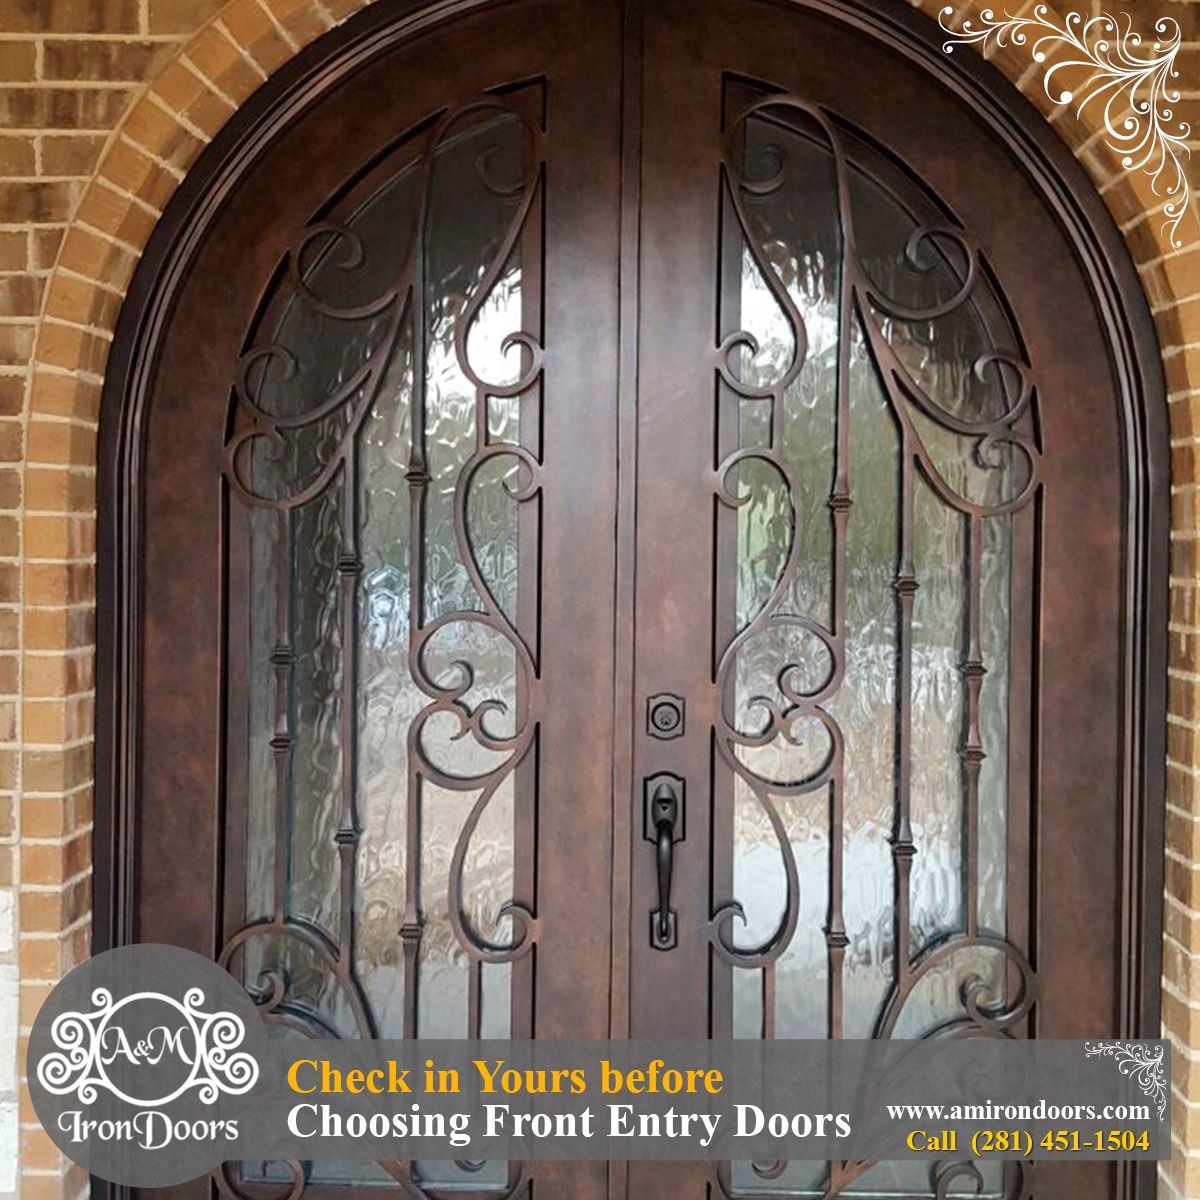 Check In Yours Before Choosing Front Entry Doors Https Goo Gl